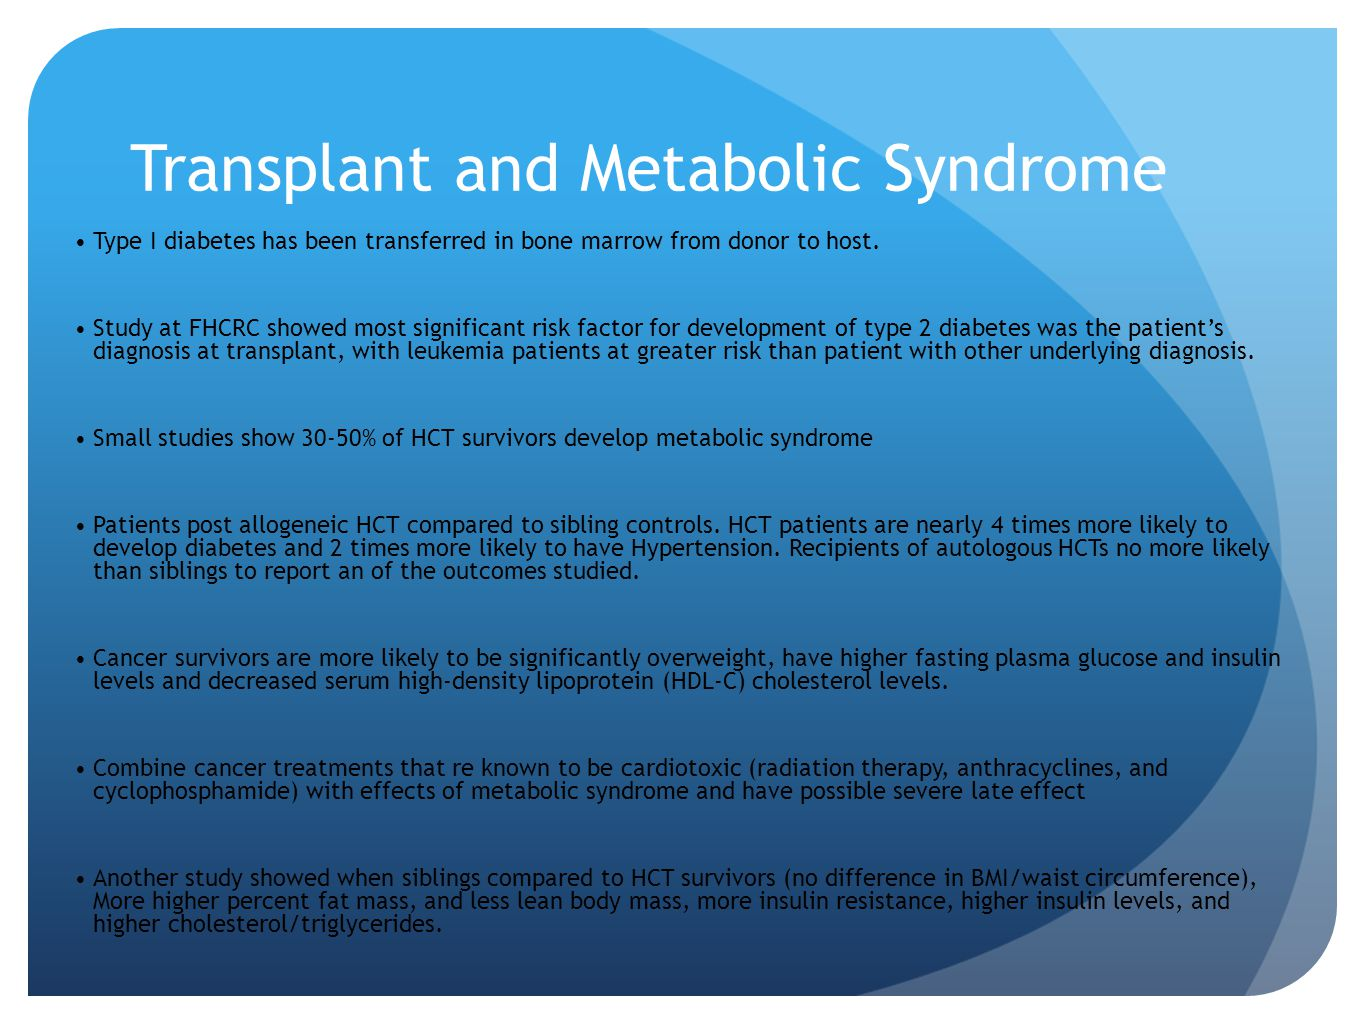 Transplant and Metabolic Syndrome